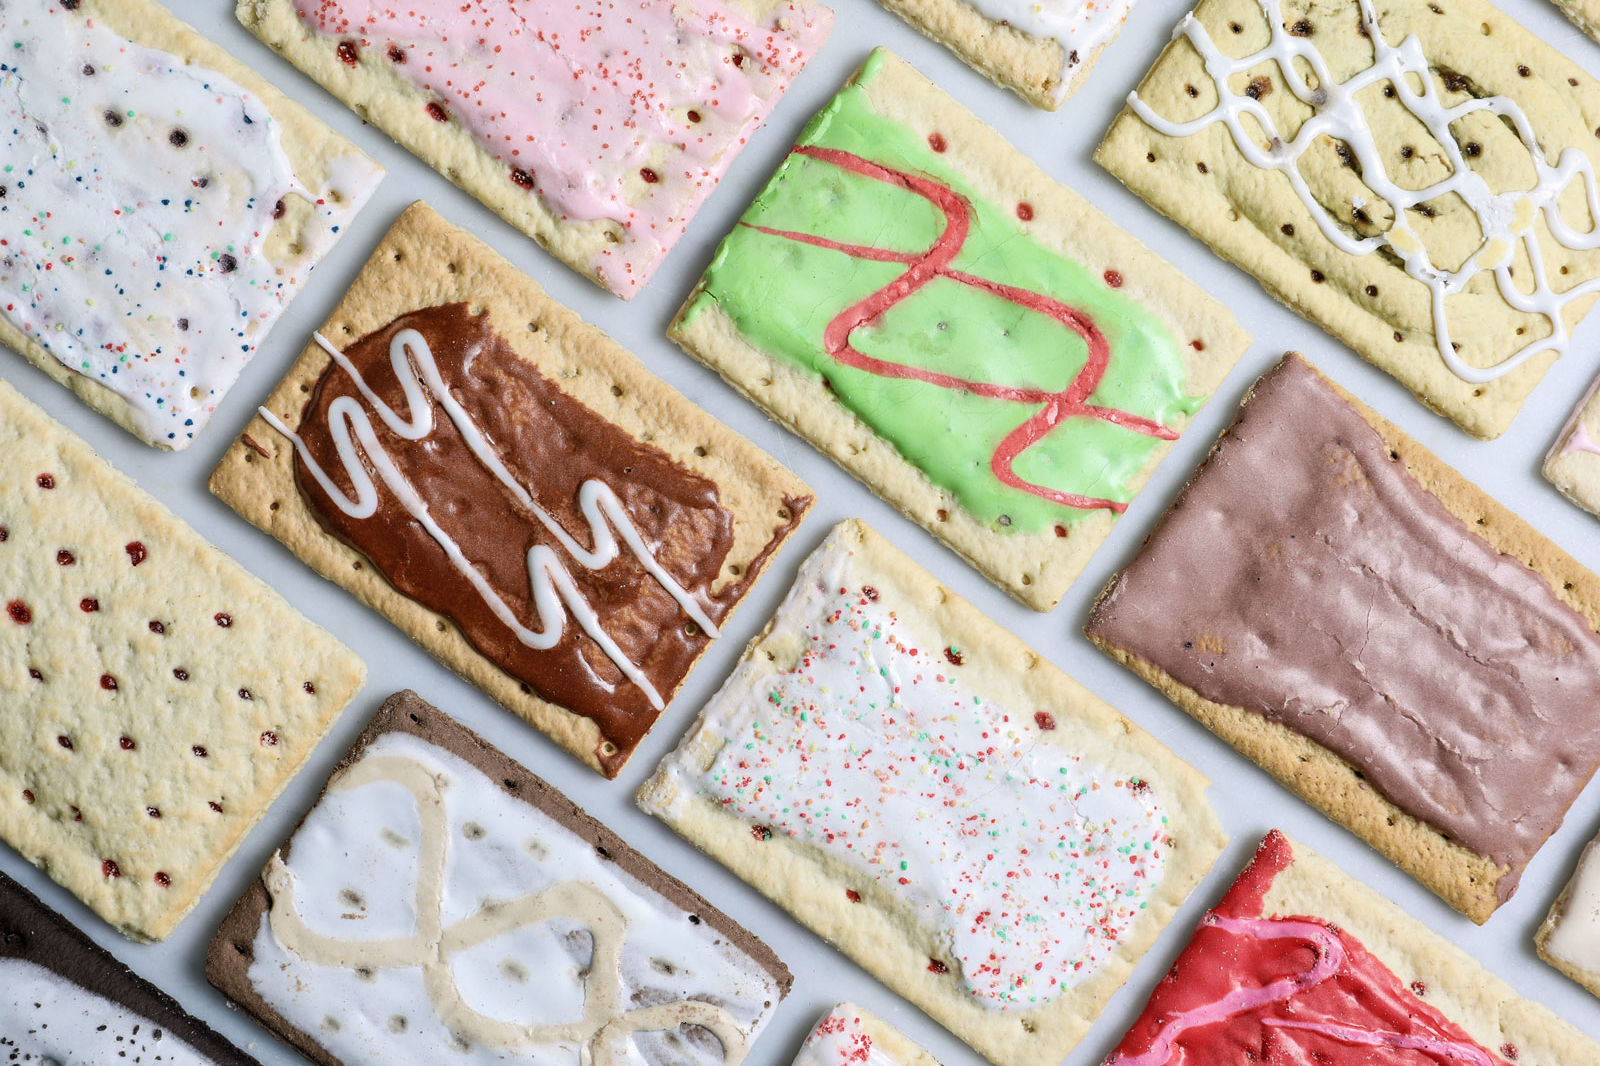 Every* Pop-Tarts Flavor, Taste-Tested and Ranked